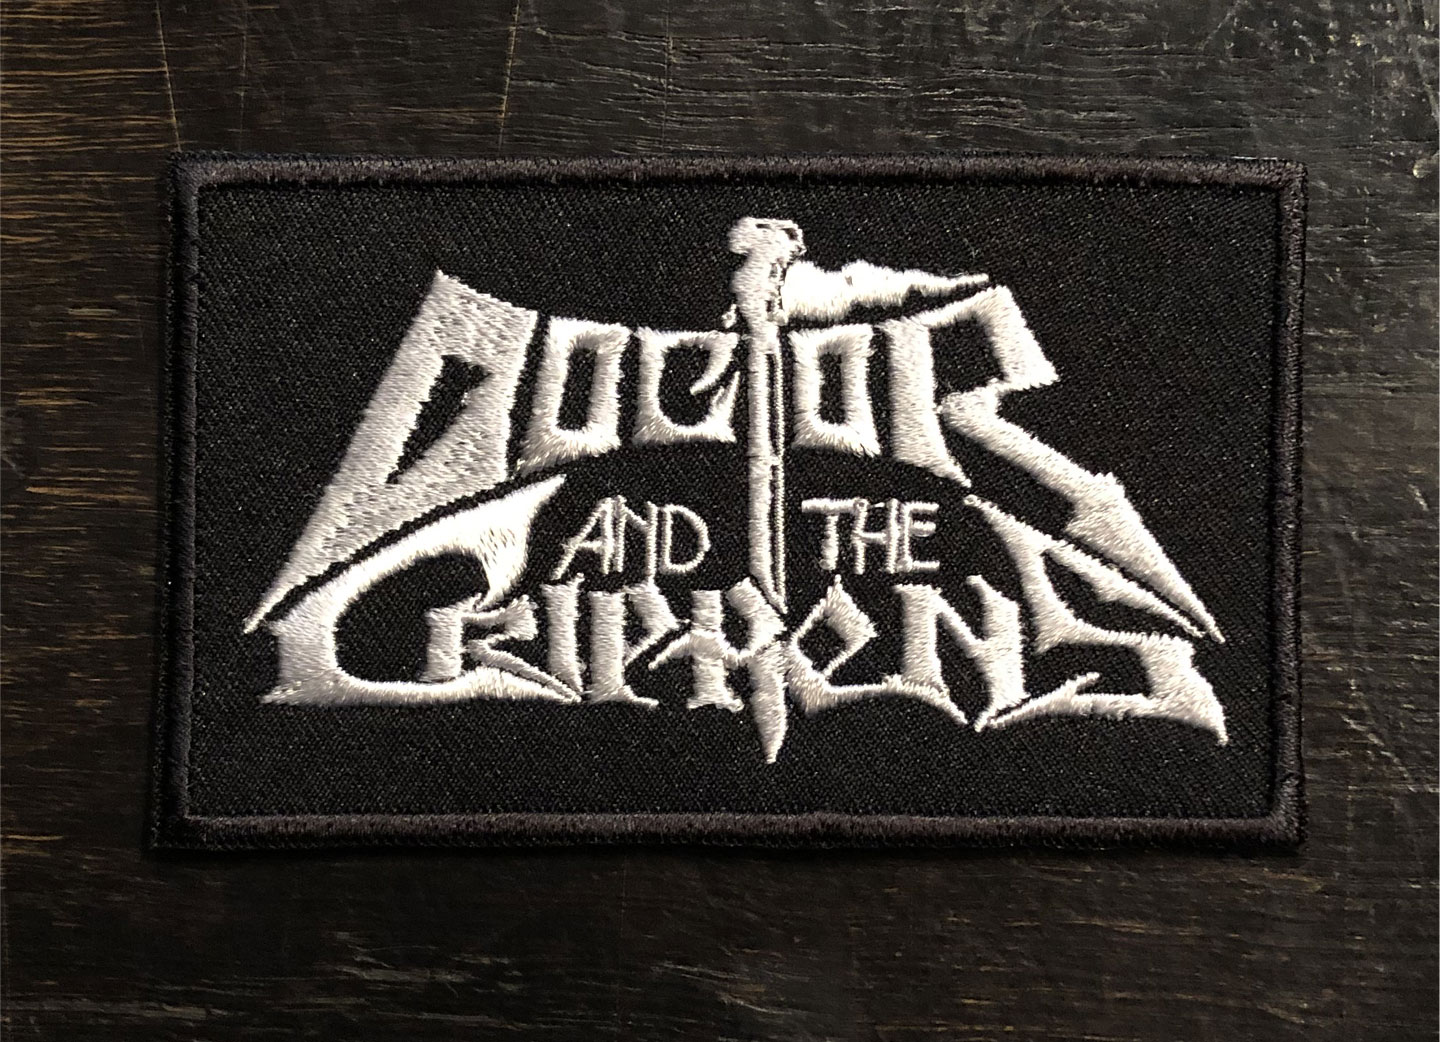 DOCTOR AND THE CRIPPENS 刺繍ワッペン LOGO